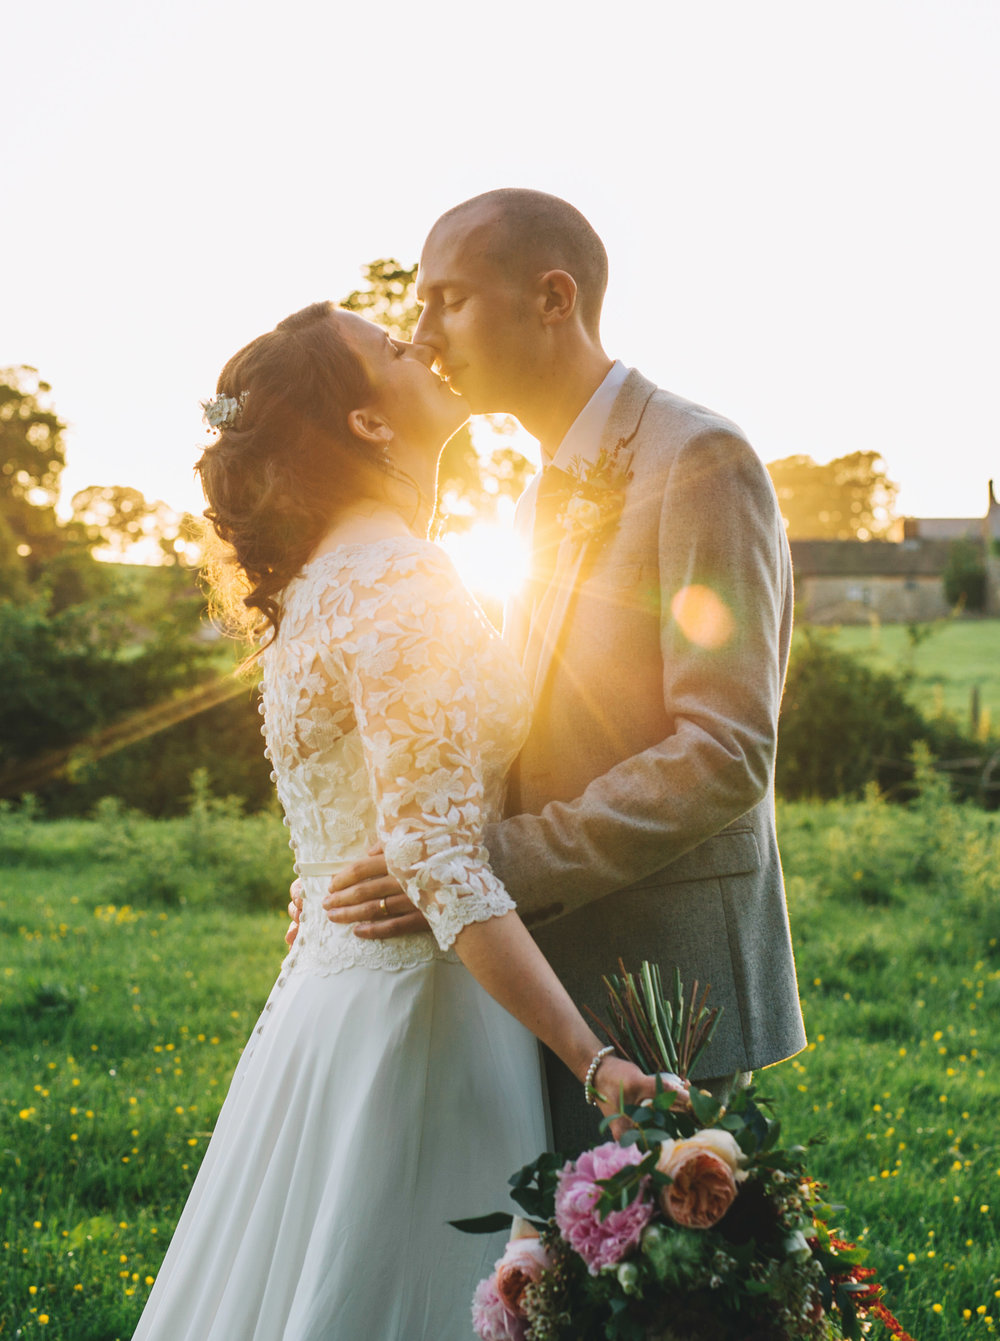 The bride and groom kissing along the sun flare, Creative wedding photography, Village Hall wedding.